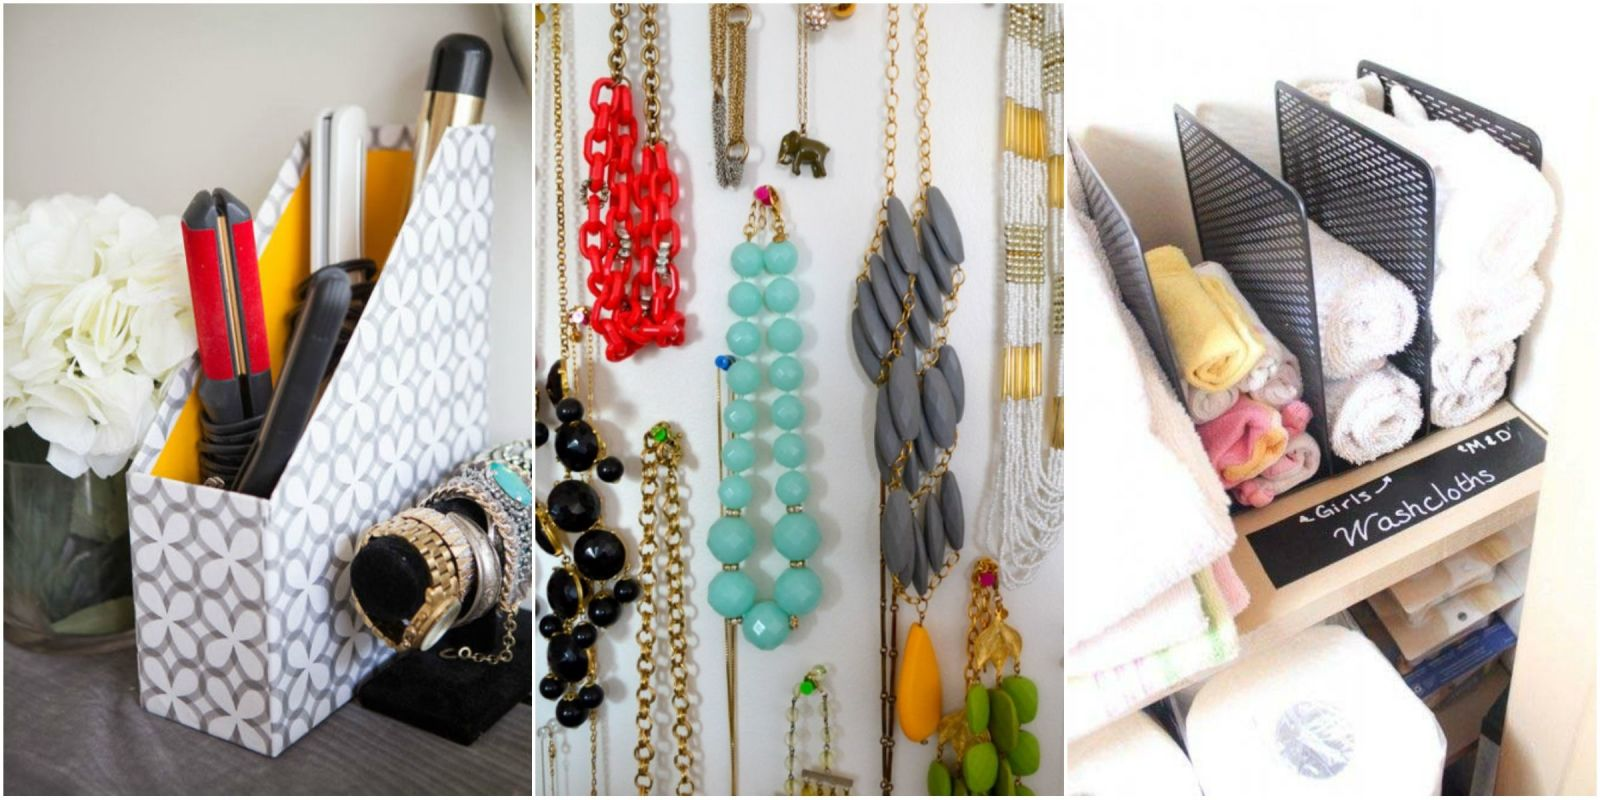 Use office supplies to organize your home office supplies organization hacks